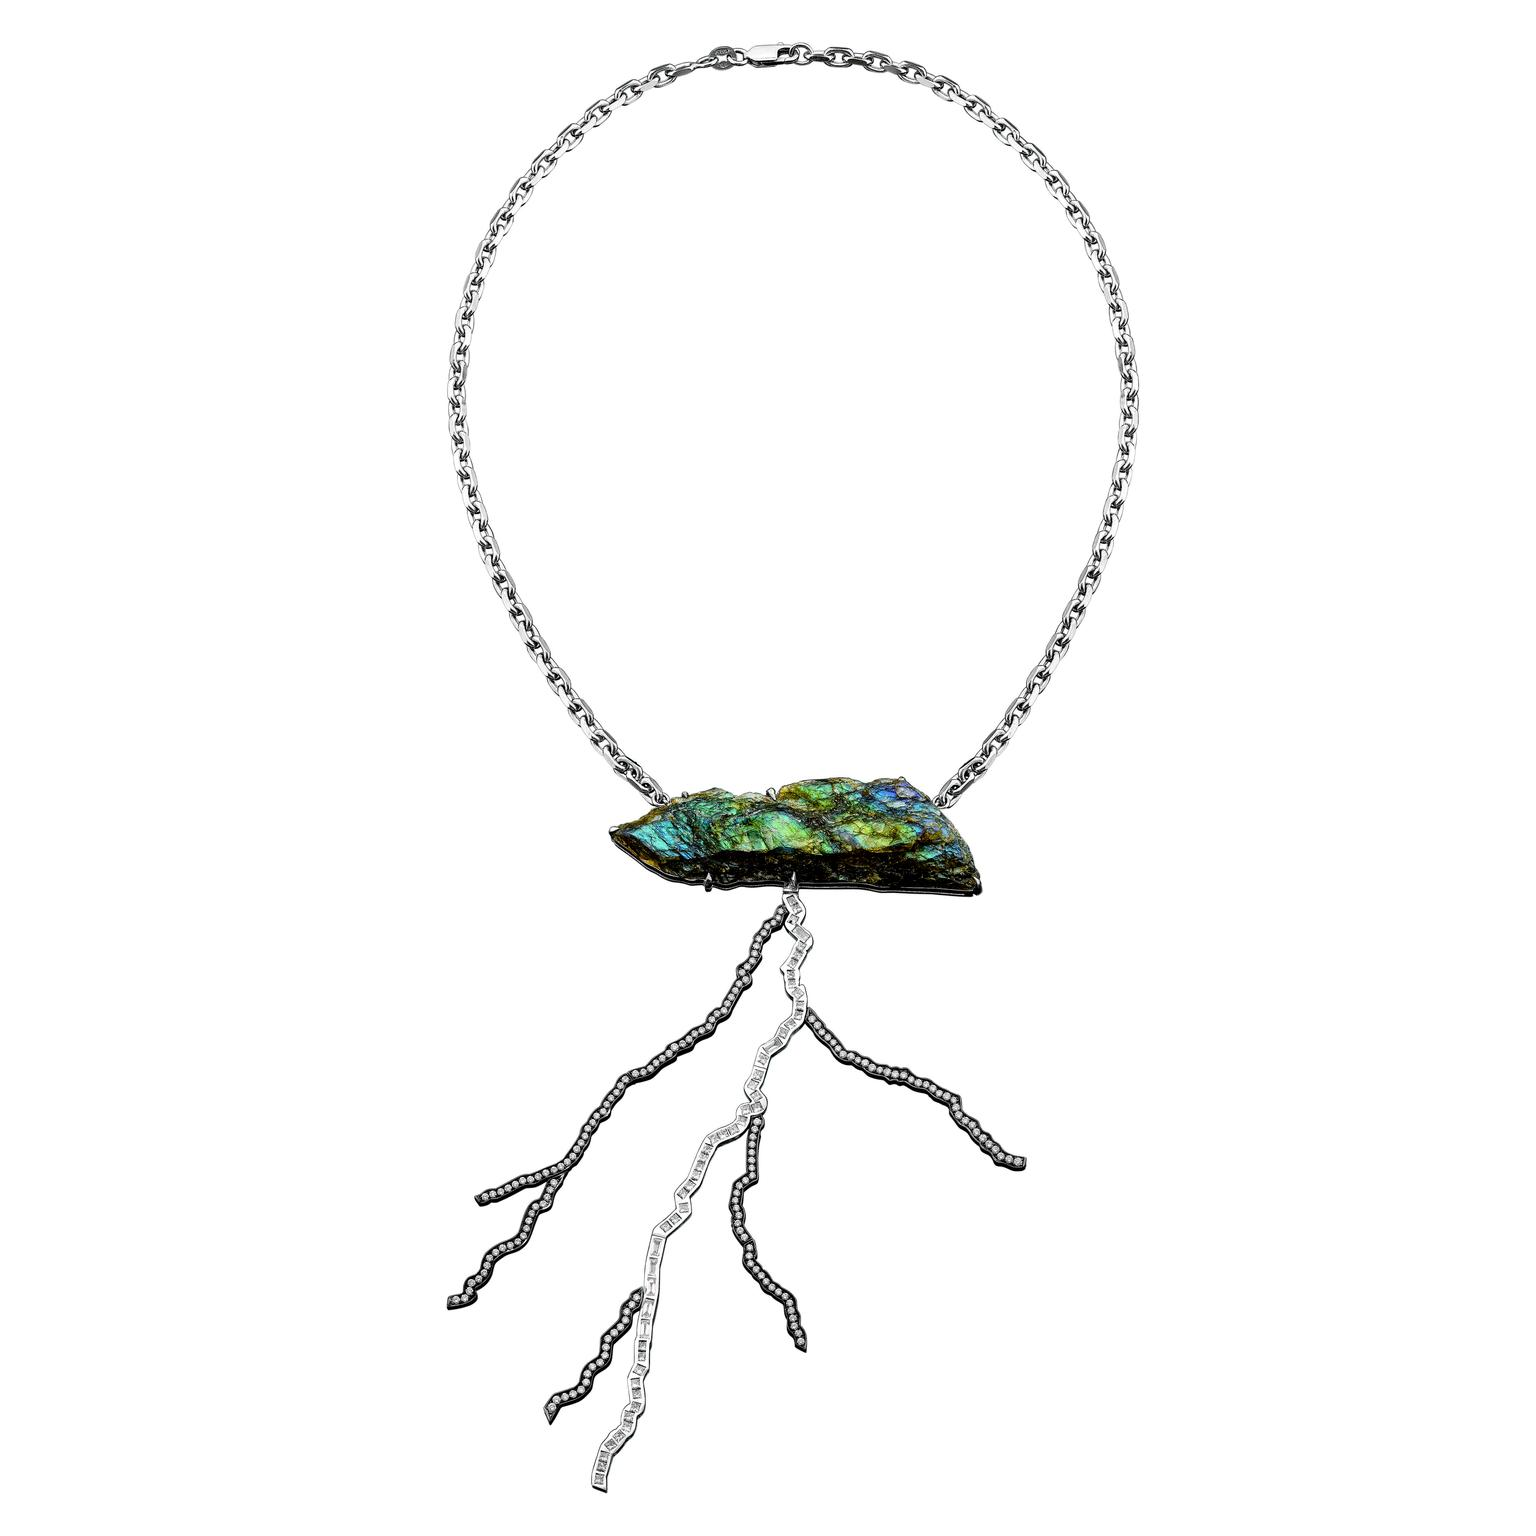 Solange Azagury-Partridge Storm Labradorite Necklace